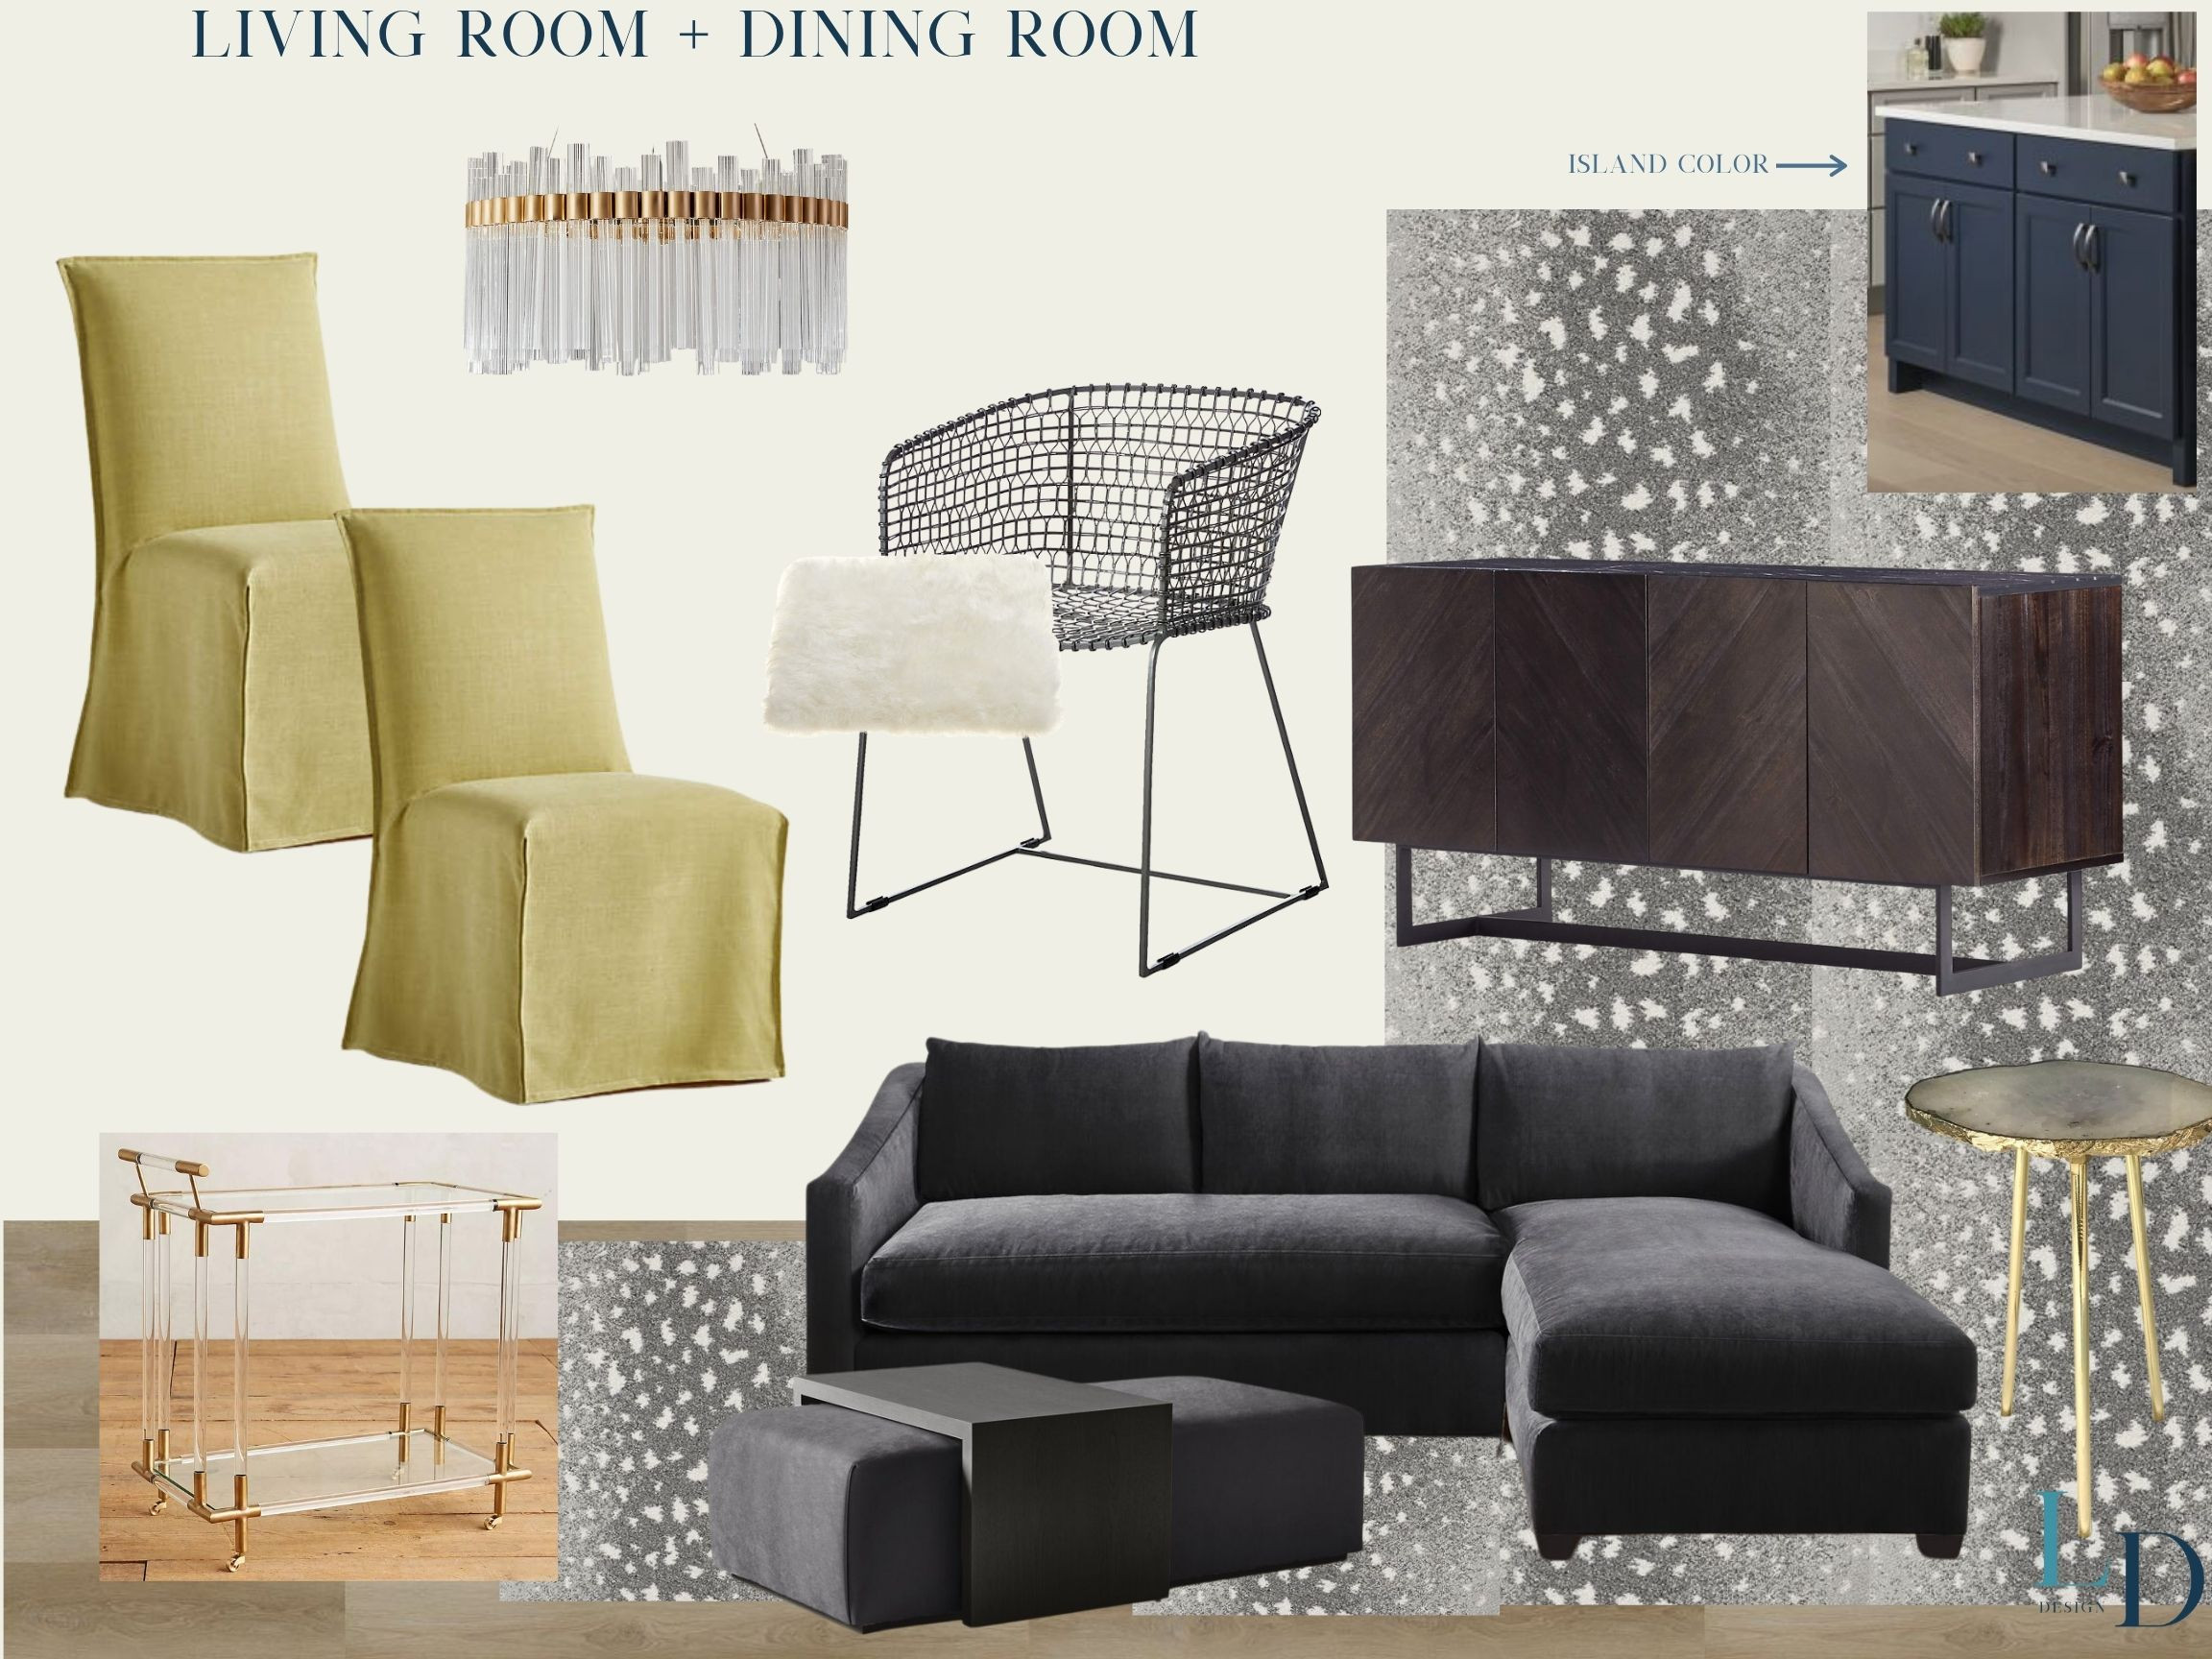 South Bay Home Moodboards